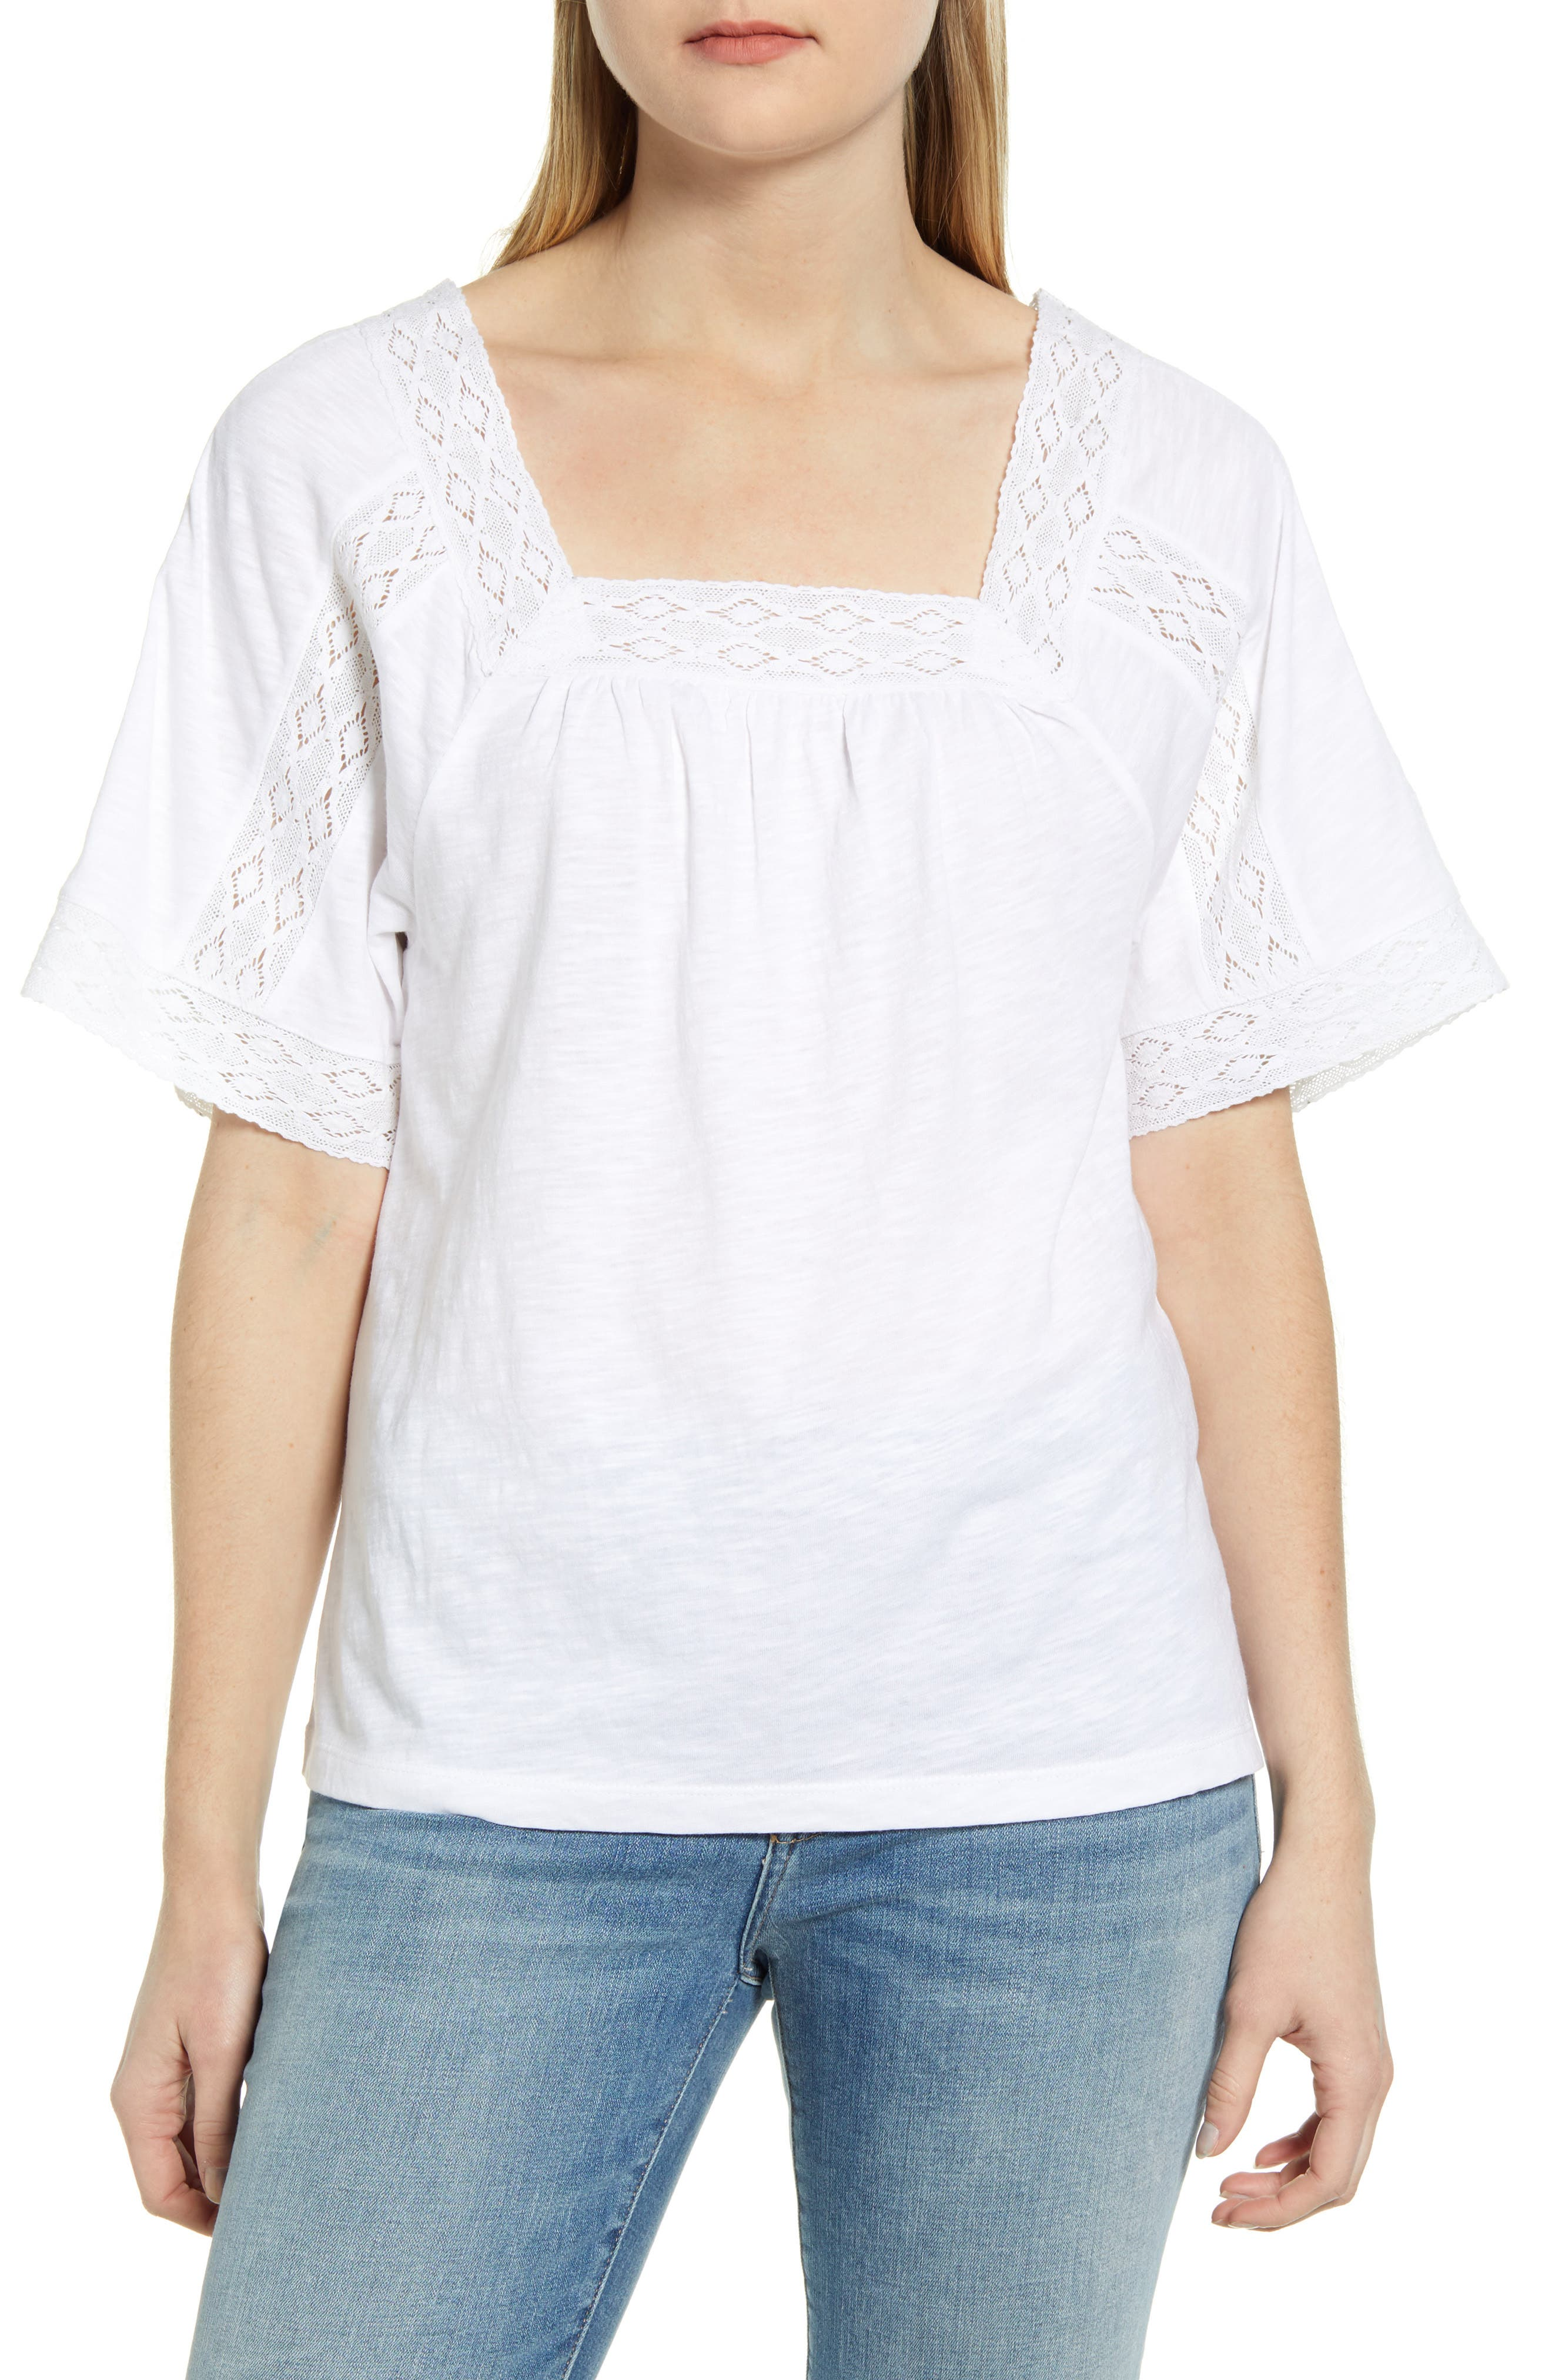 A slubbed-jersey T-shirt gets a boho makeover with bands of lace tracing the cuffs and square necklines as well as striping the flowy elbow-length sleeves. Style Name: Caslon Lace Inset Boho T-Shirt. Style Number: 5988188 1. Available in stores.